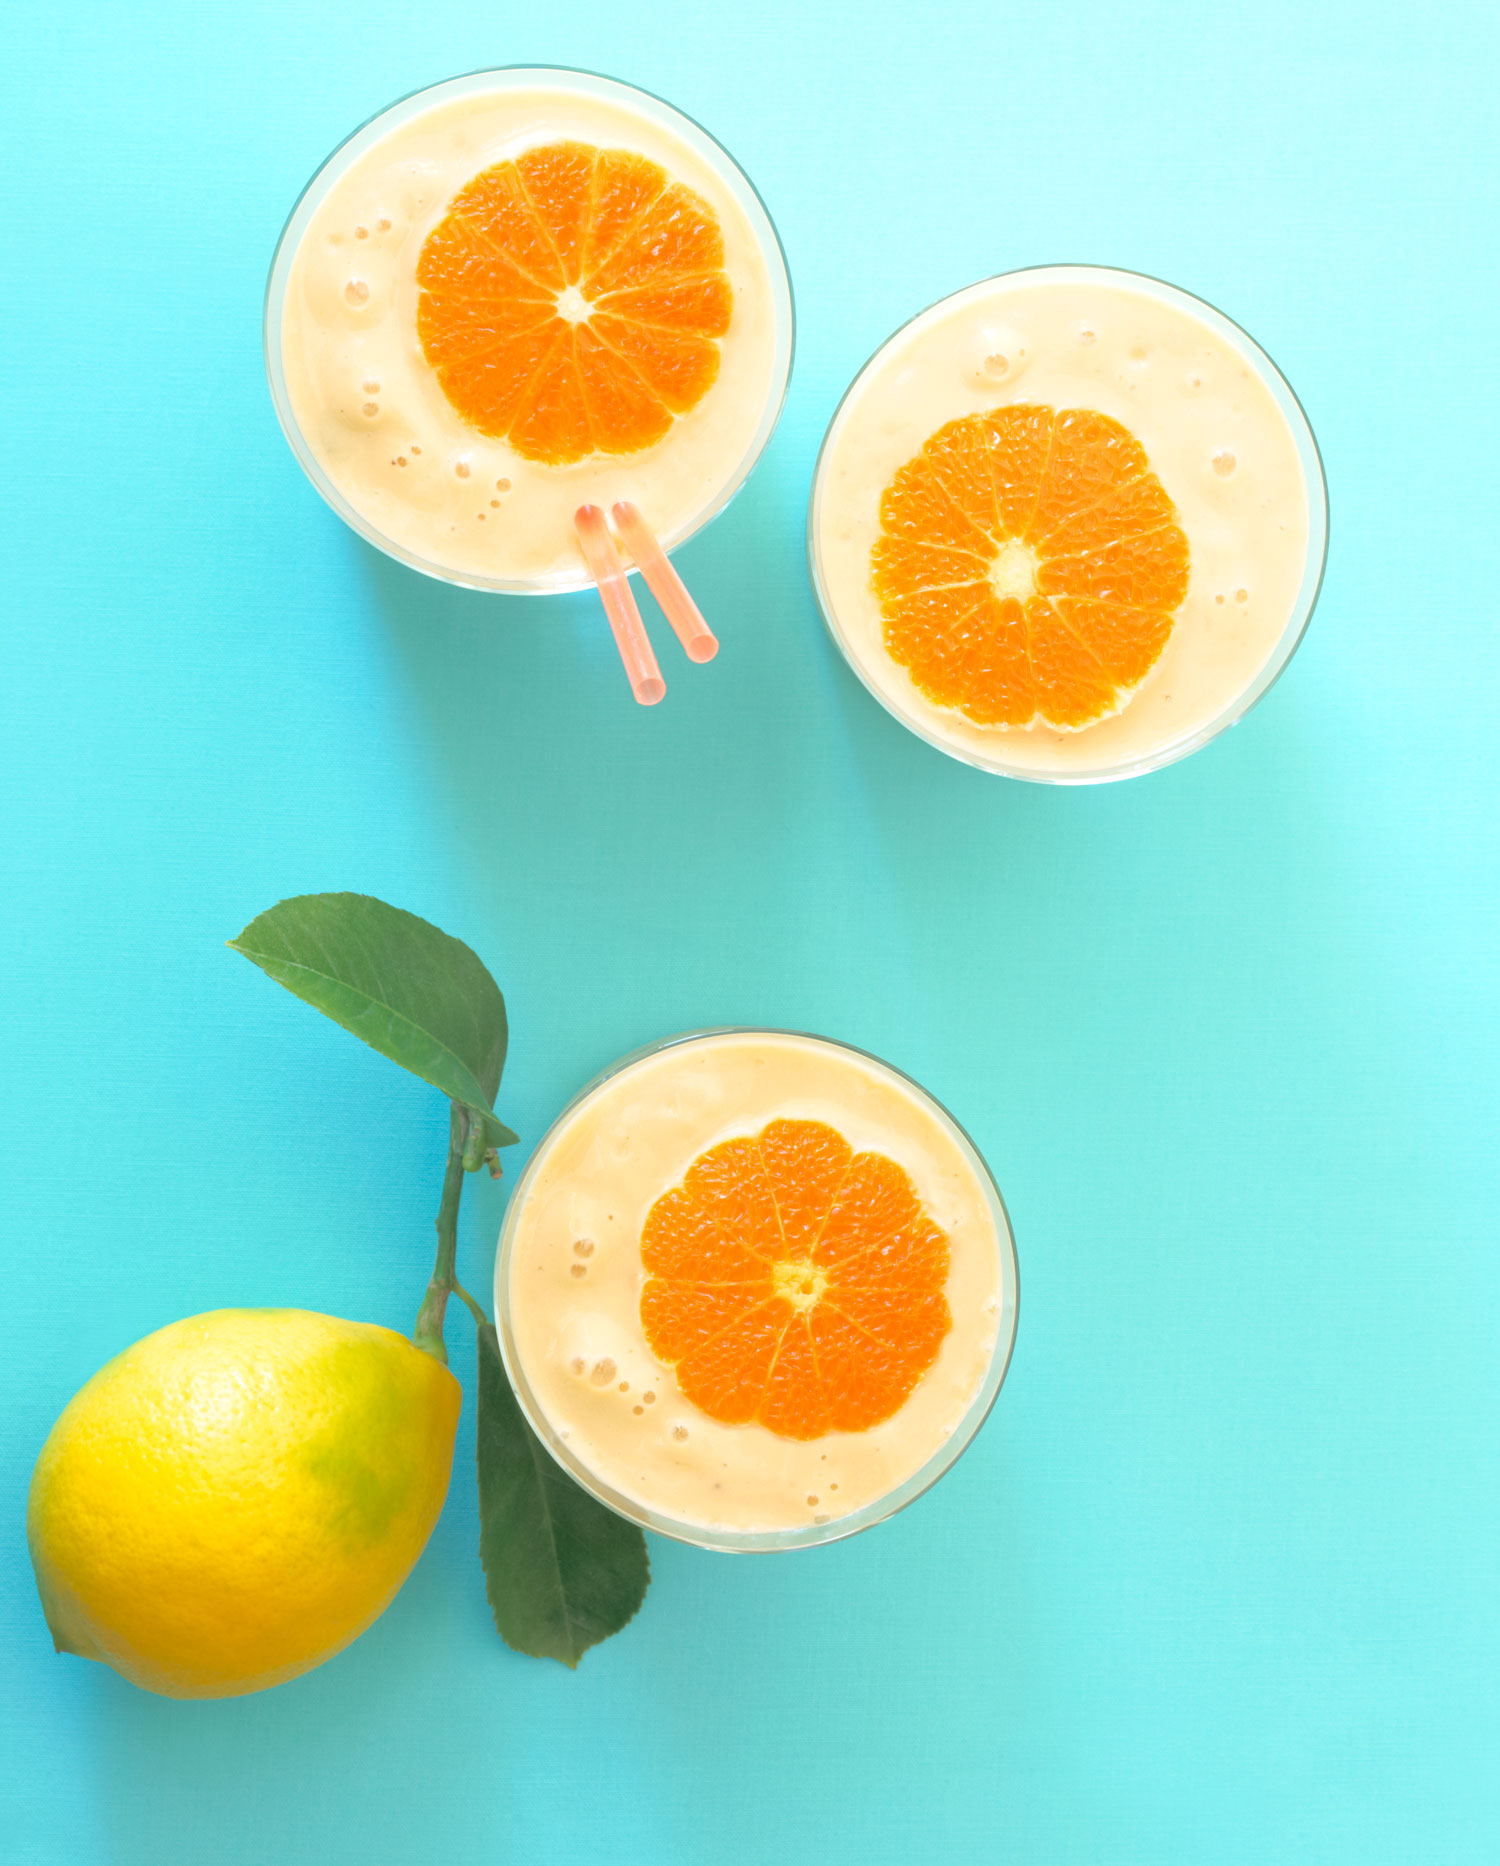 Healthy Smoothie Recipes to Get Your Day Started